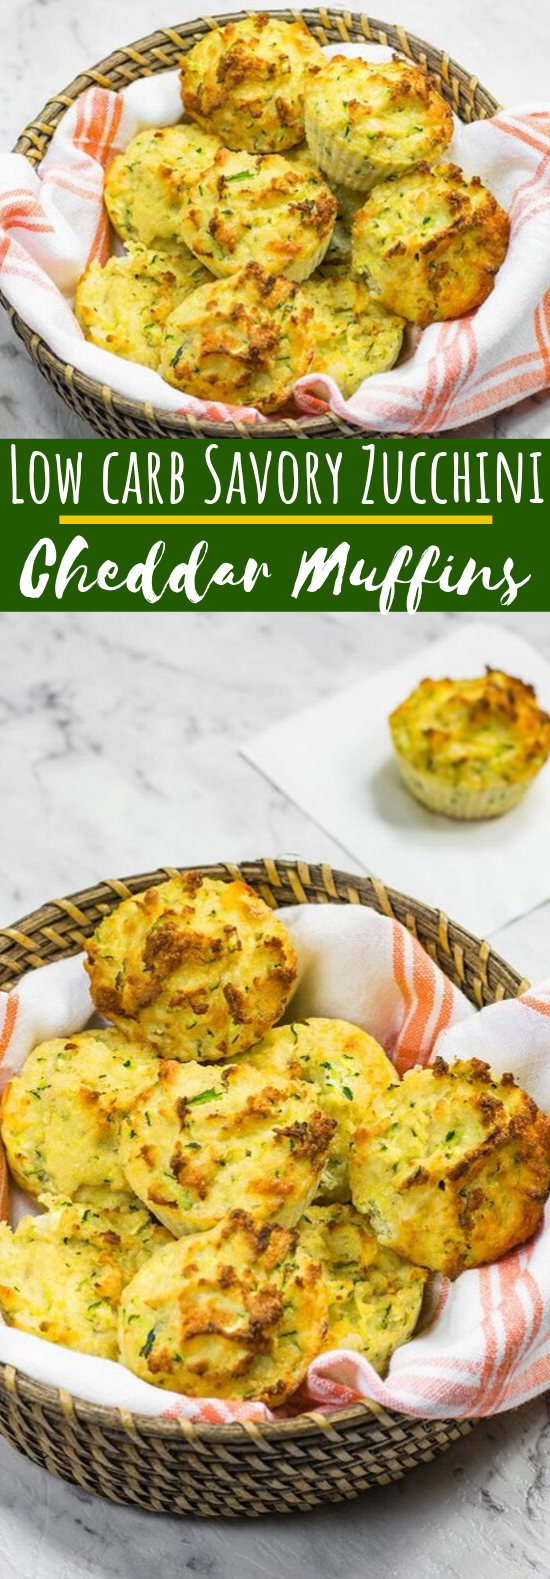 Low Carb Savory Cheddar Cheese & Zucchini Muffins #healthy #keto